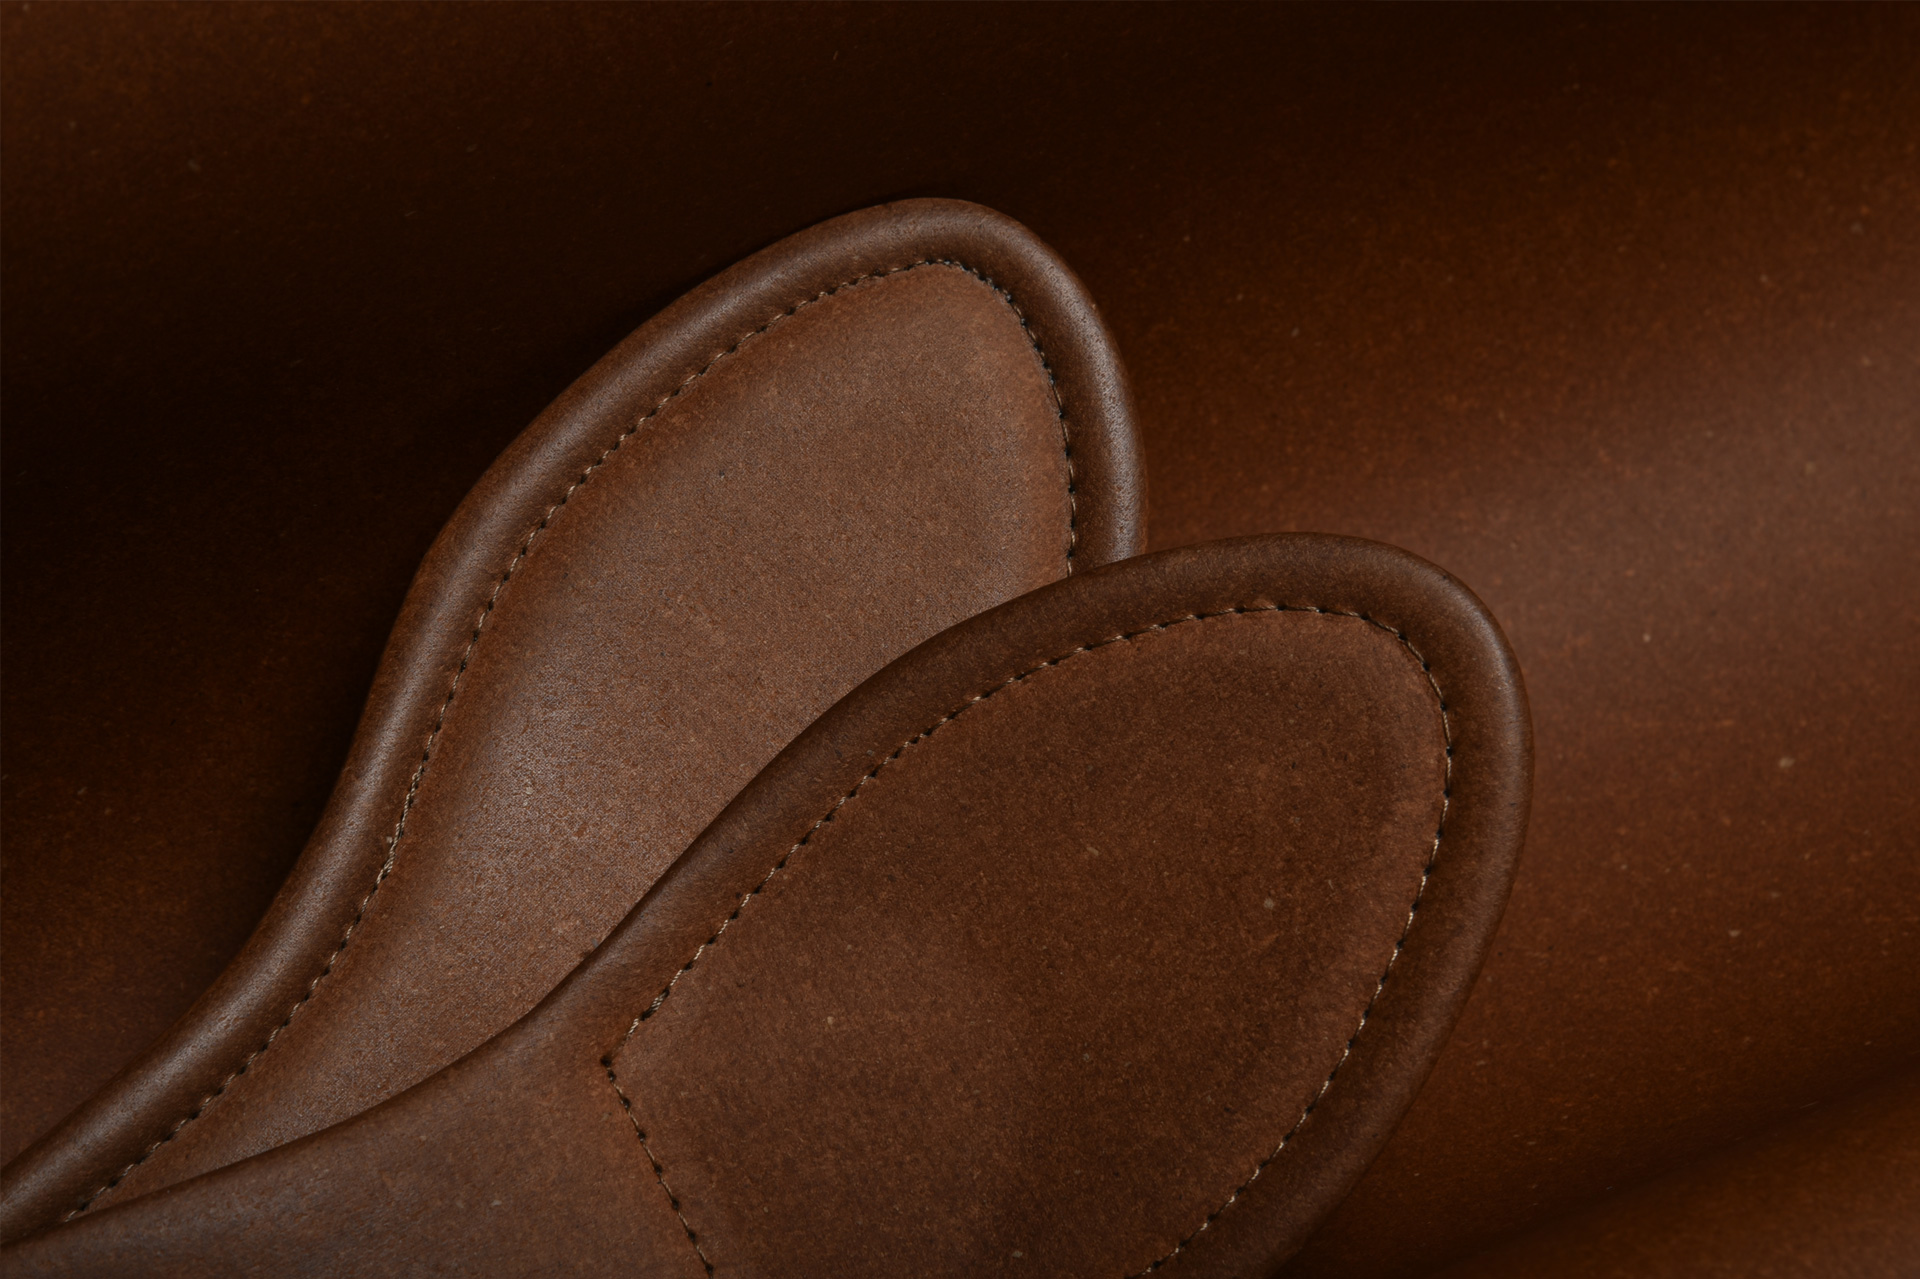 Regenerated leather is used in leather goods and footwear also as reinforcement